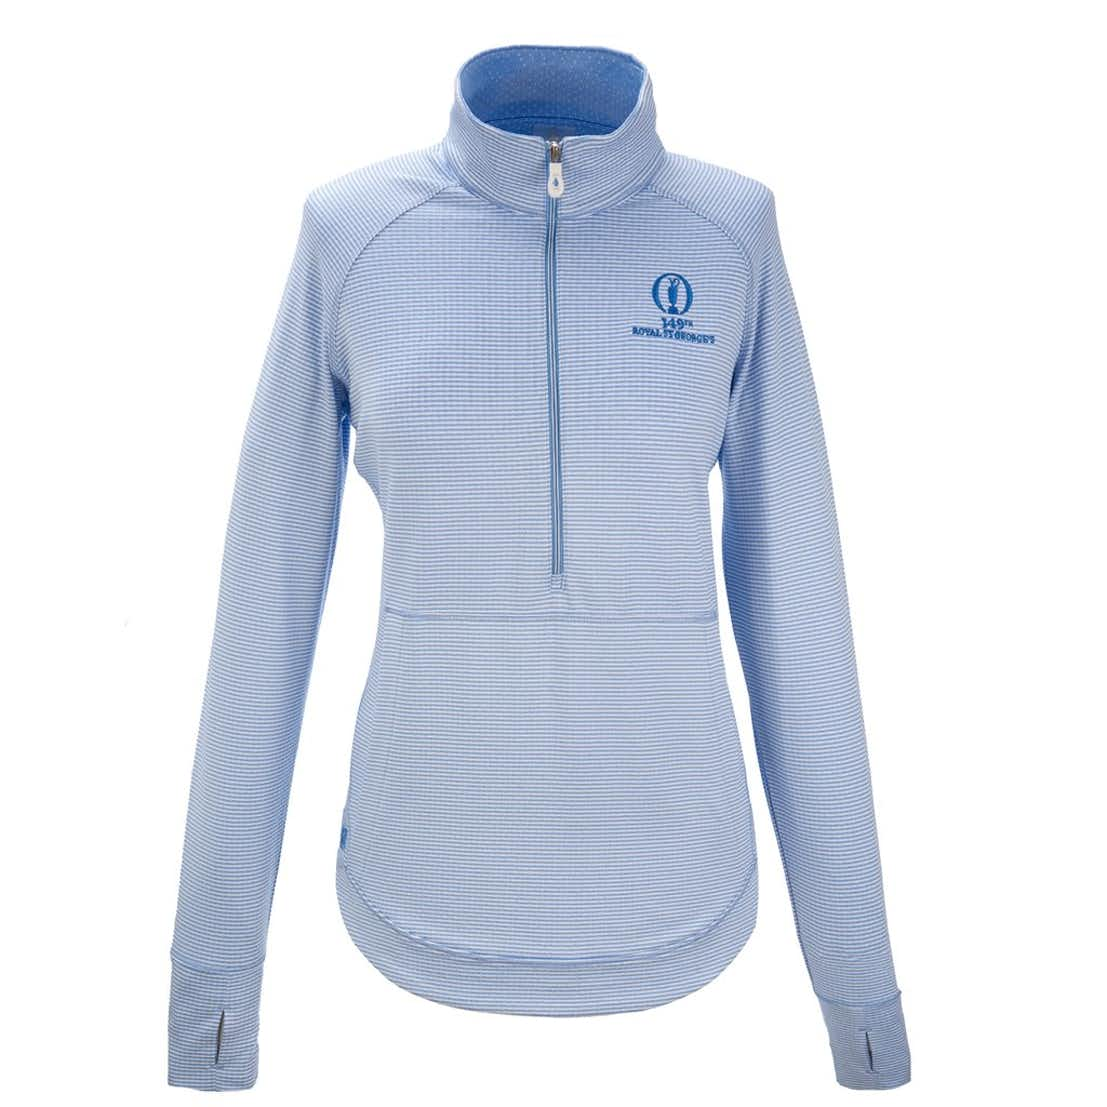 149th Royal St George's Kate Lord 1/4-Zip Layer - Blue